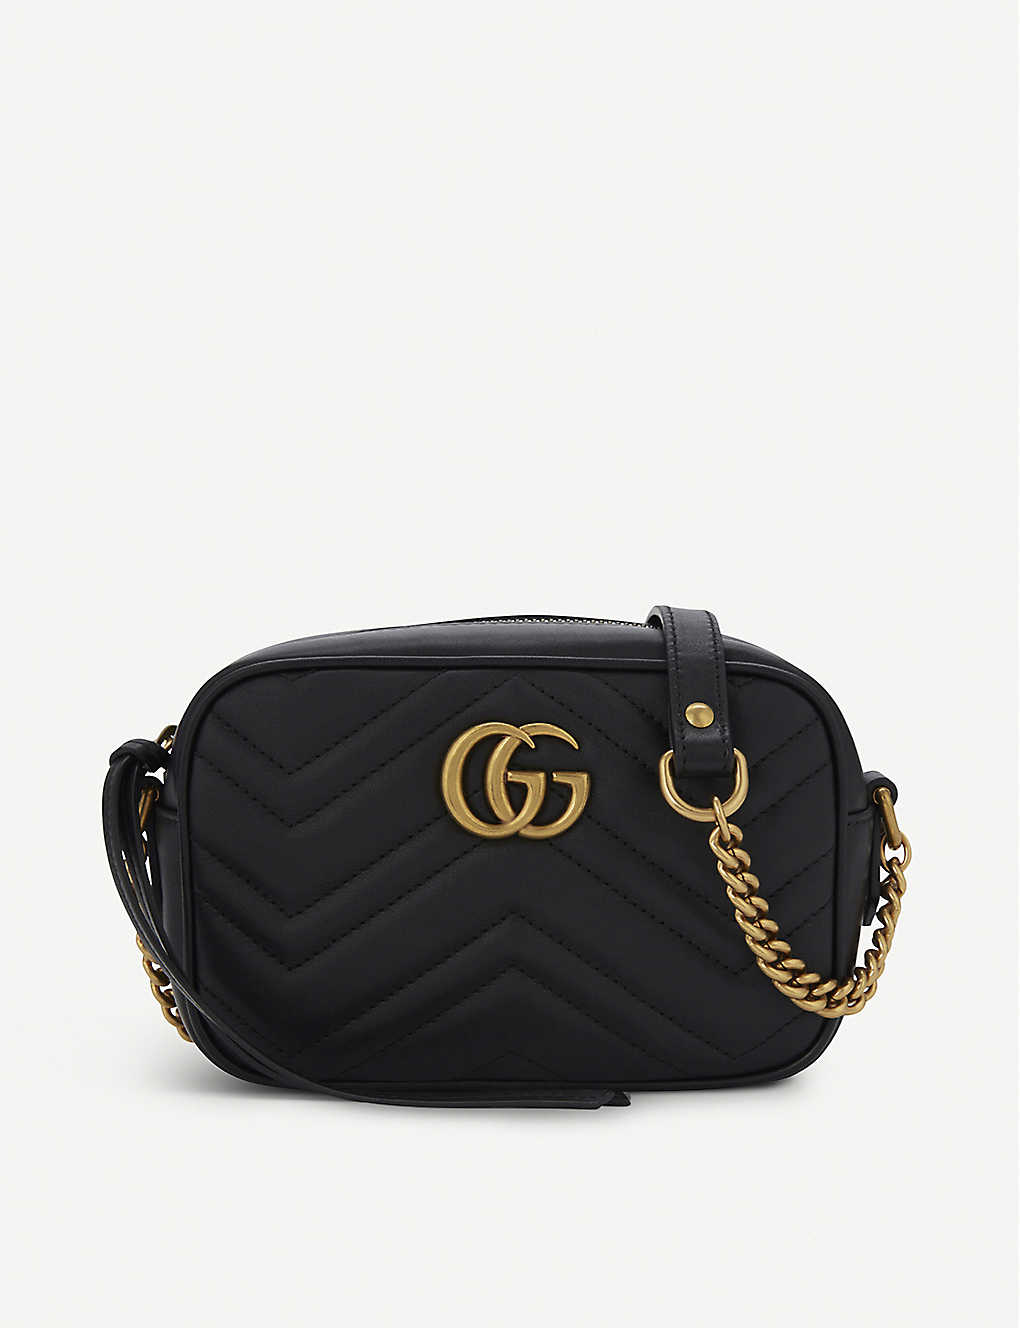 eb71d312f9d284 GUCCI - GG Marmont mini quilted leather cross-body bag | Selfridges.com